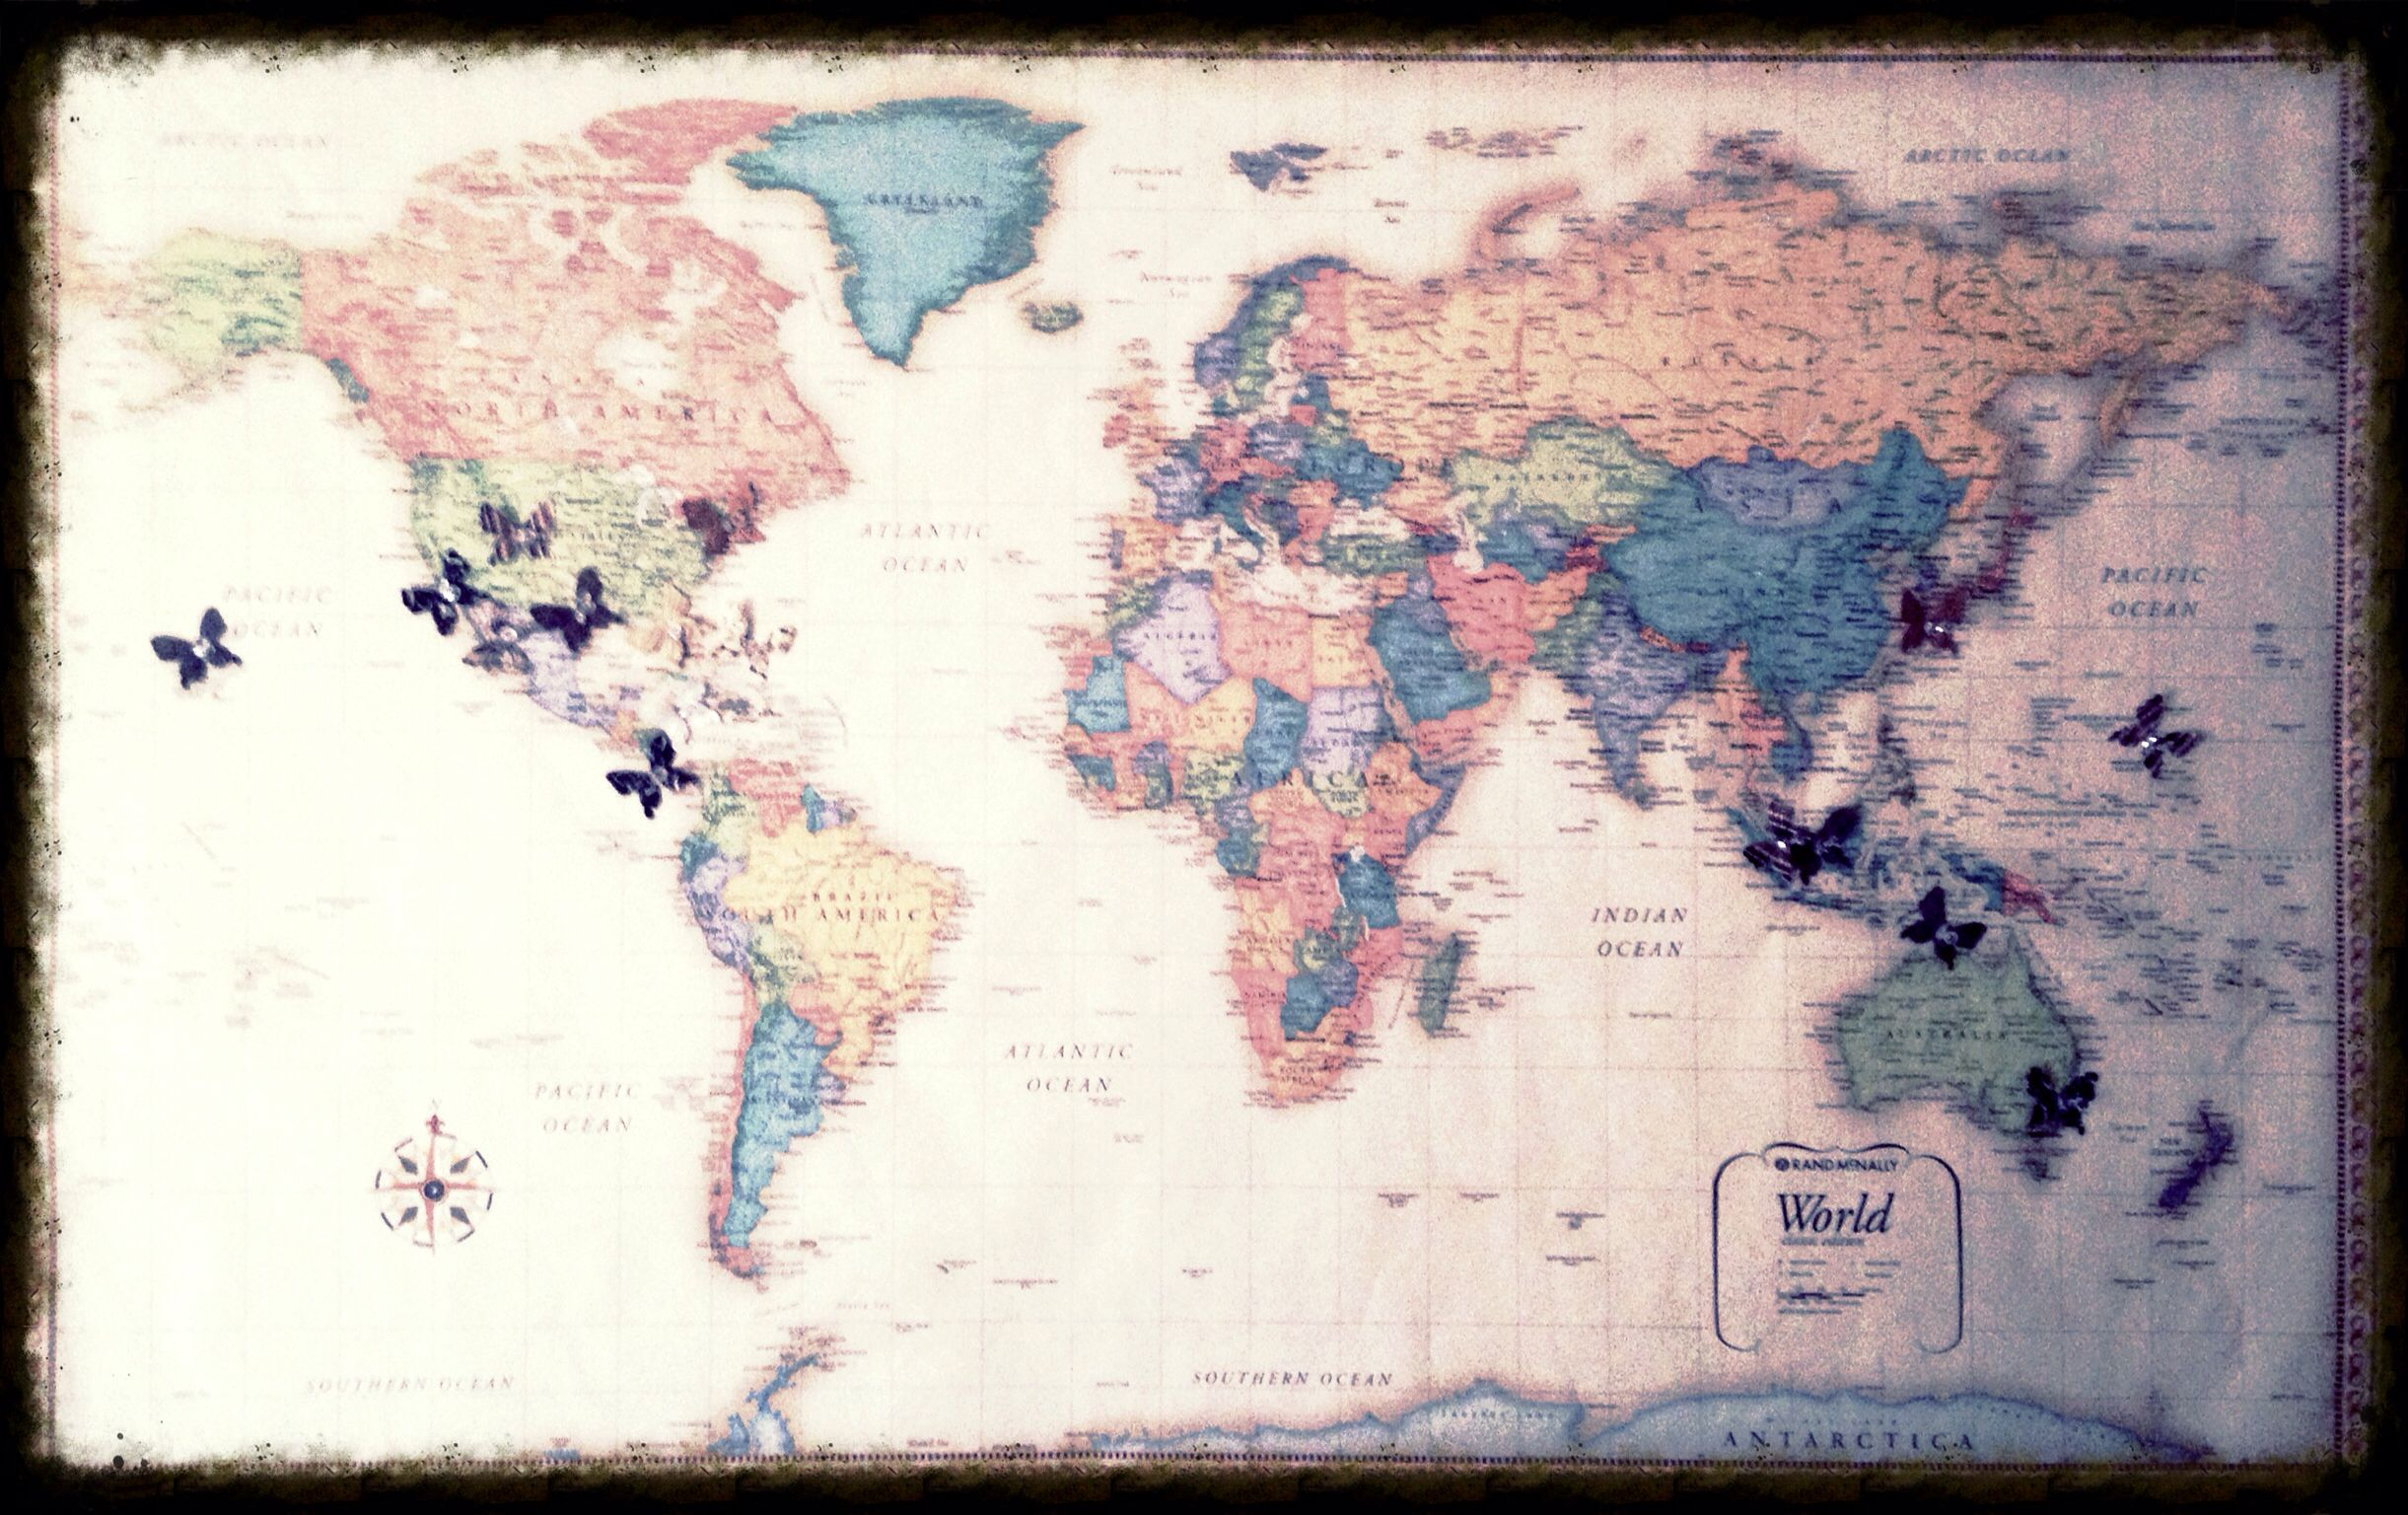 Diy world map traveling tracker travel pinterest dorm diy world map traveling tracker gumiabroncs Image collections